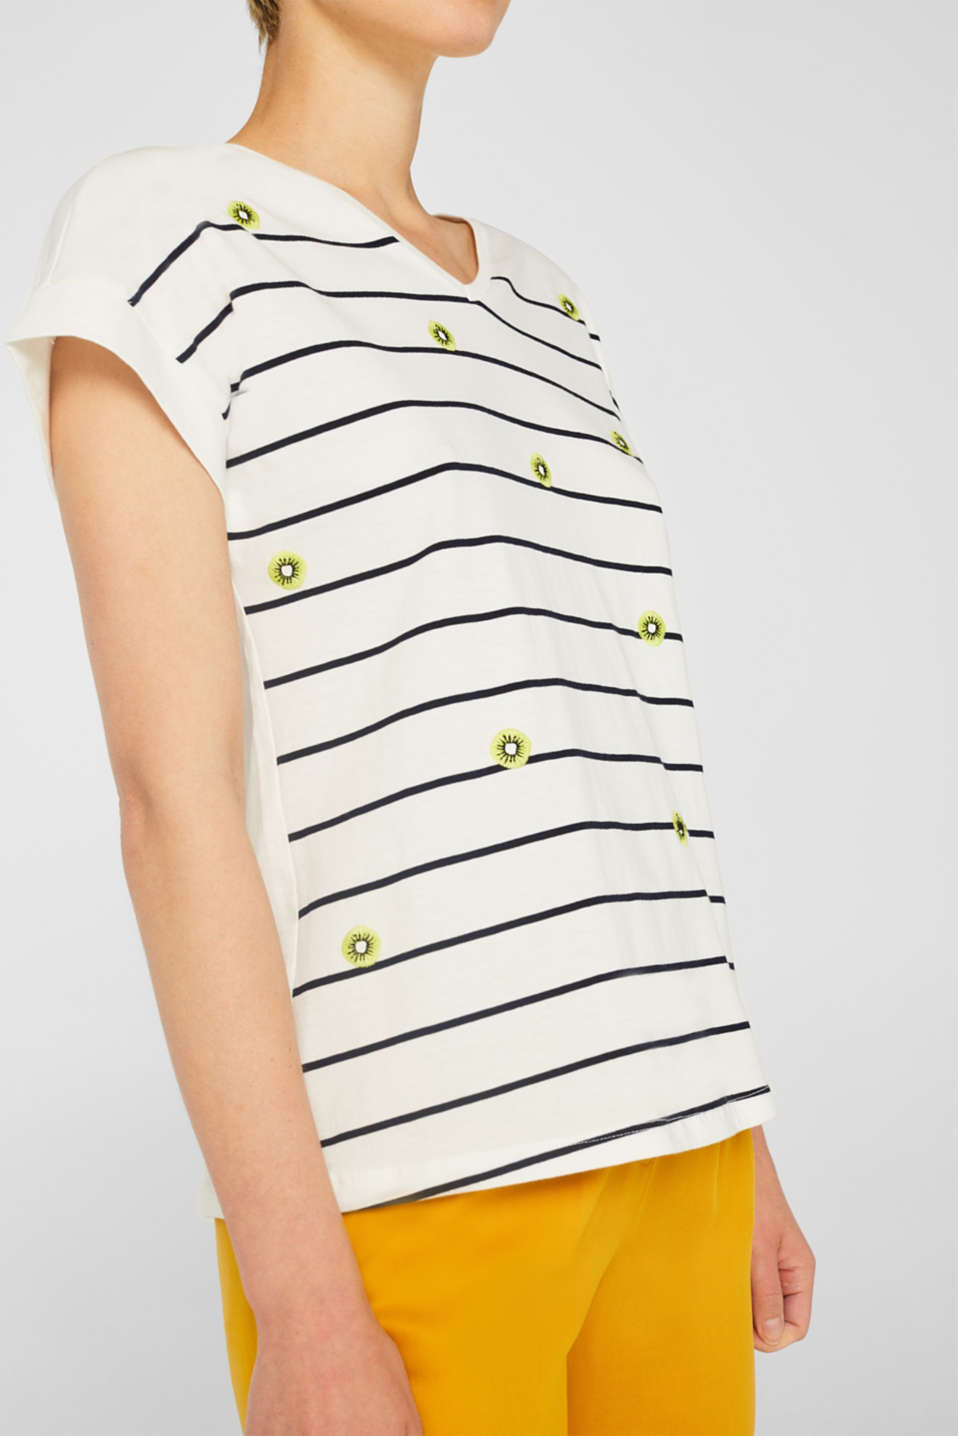 Striped top with embroidered details, 100% cotton, OFF WHITE, detail image number 2